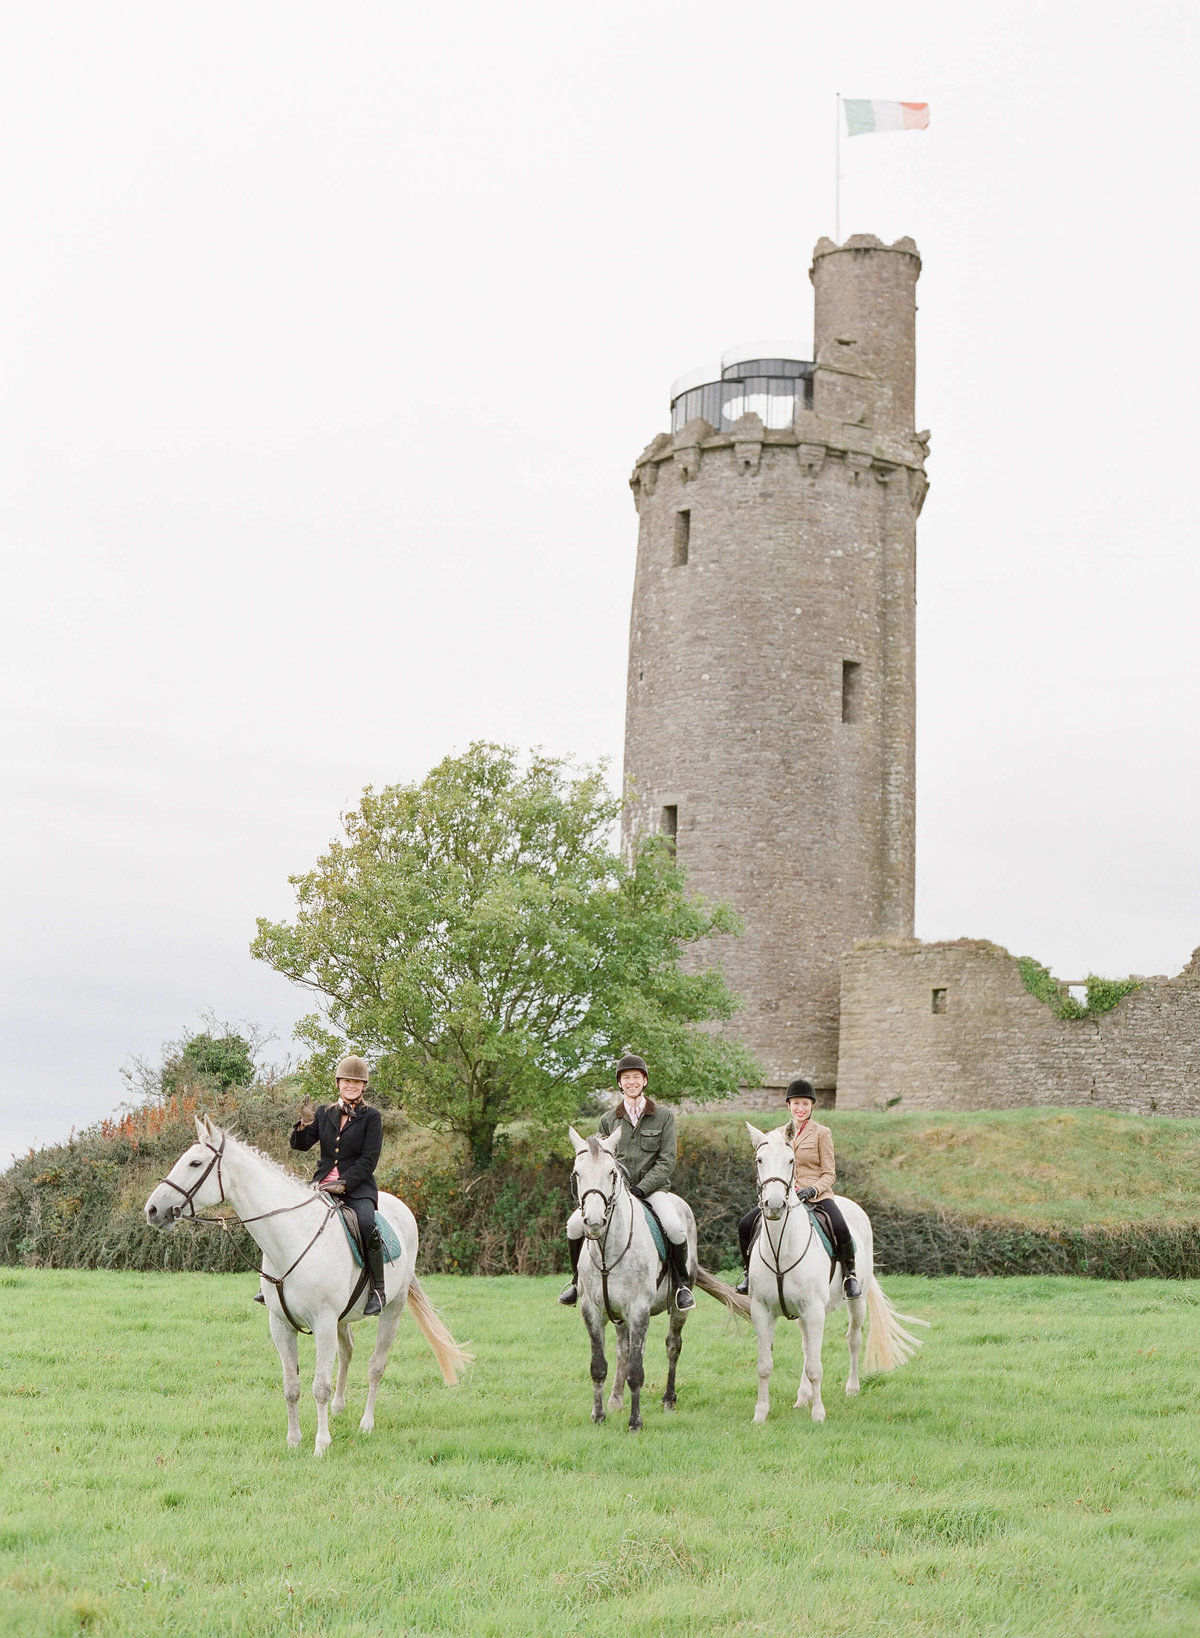 86-KTMerry-weddings-horseback-riding-Ballyfin-Ireland